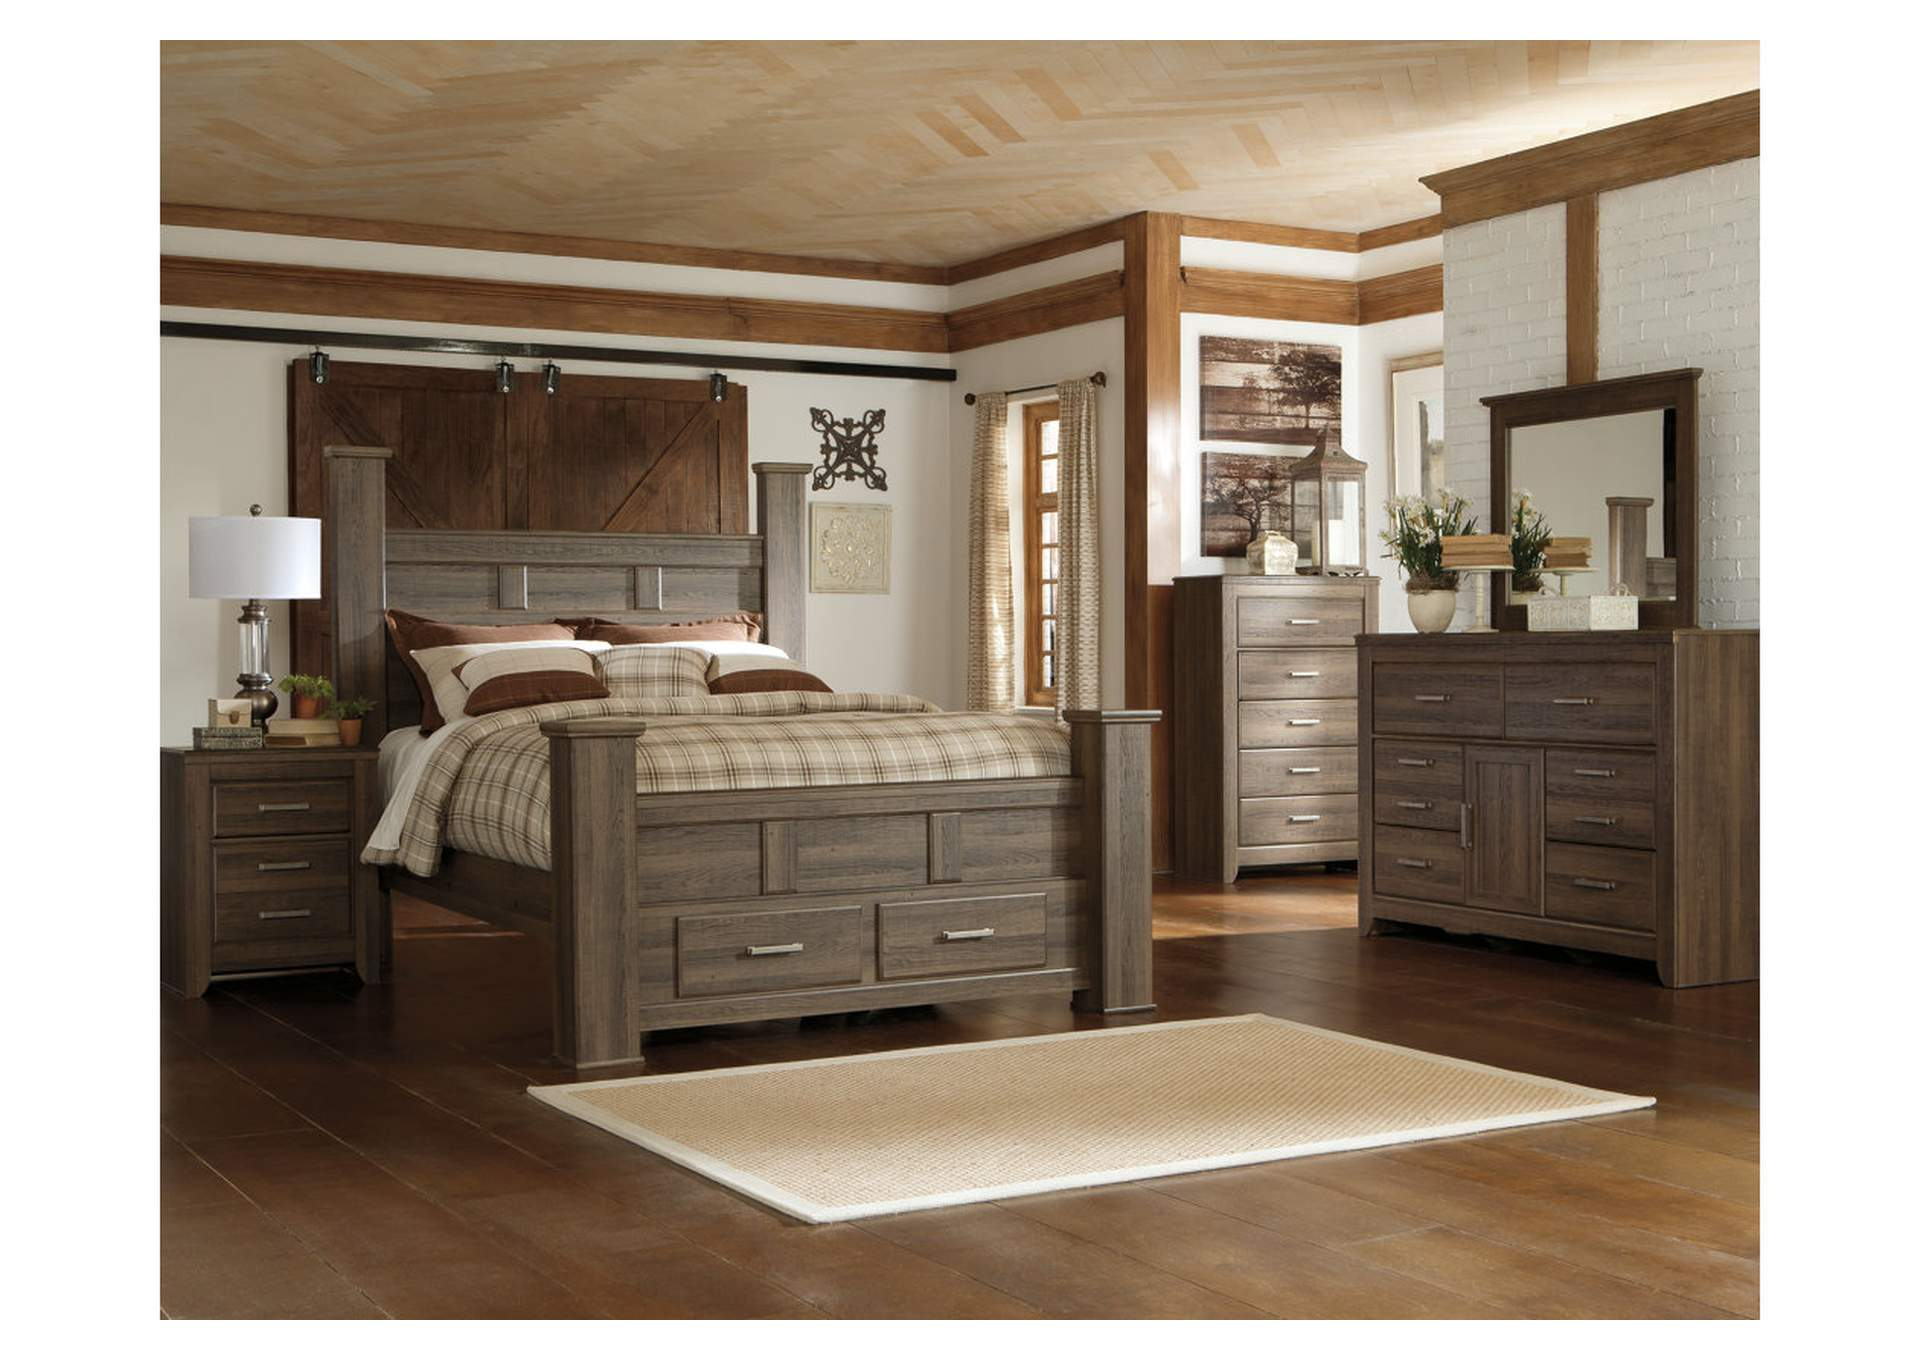 Juararo Queen Poster Storage Bed w/Dresser, Mirror & 2 Nightstands,Signature Design By Ashley